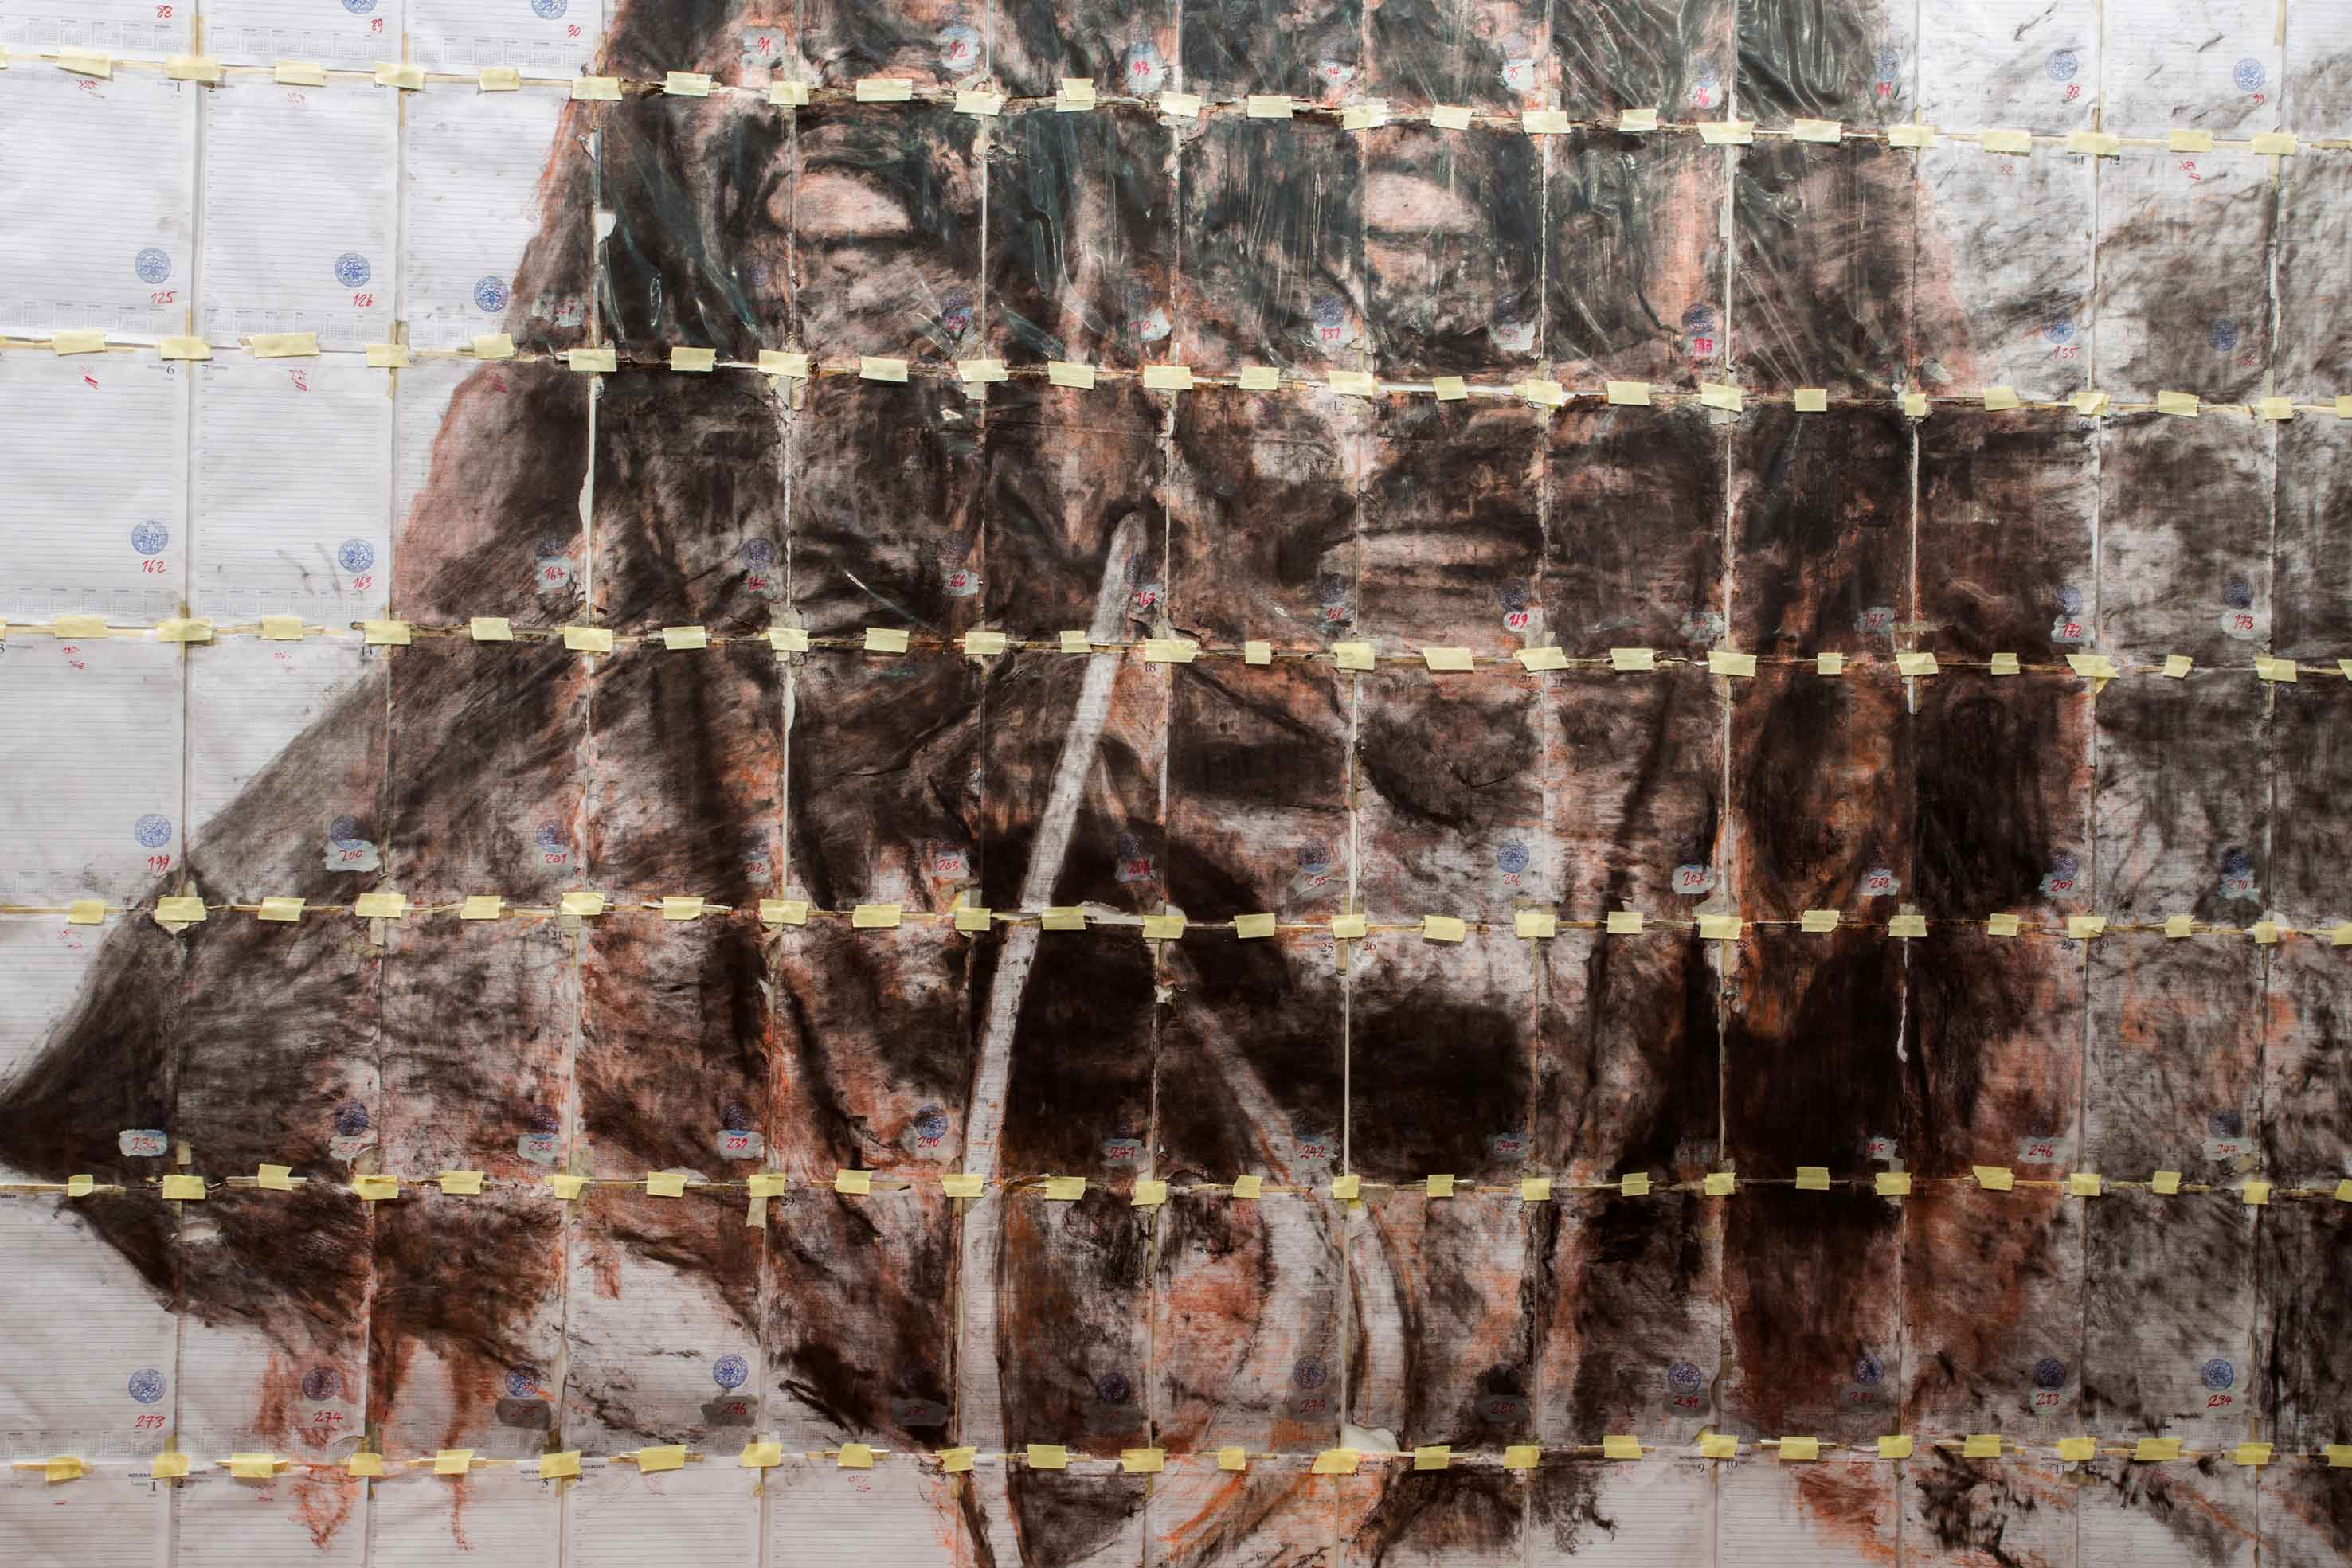 Bernhard Sachs, 'The Paranoiac-Critical Ratio (one year or two seconds of ecstacy) Melbourne 3.39.02 am 2005 Dali Cadaver', 2016<br>Charcoal, ink, comte, rubber stamp, acrylic, texta on diary pages in plastic sheets, $POA <br><br>Courtesy of the artist and NKN Gallery